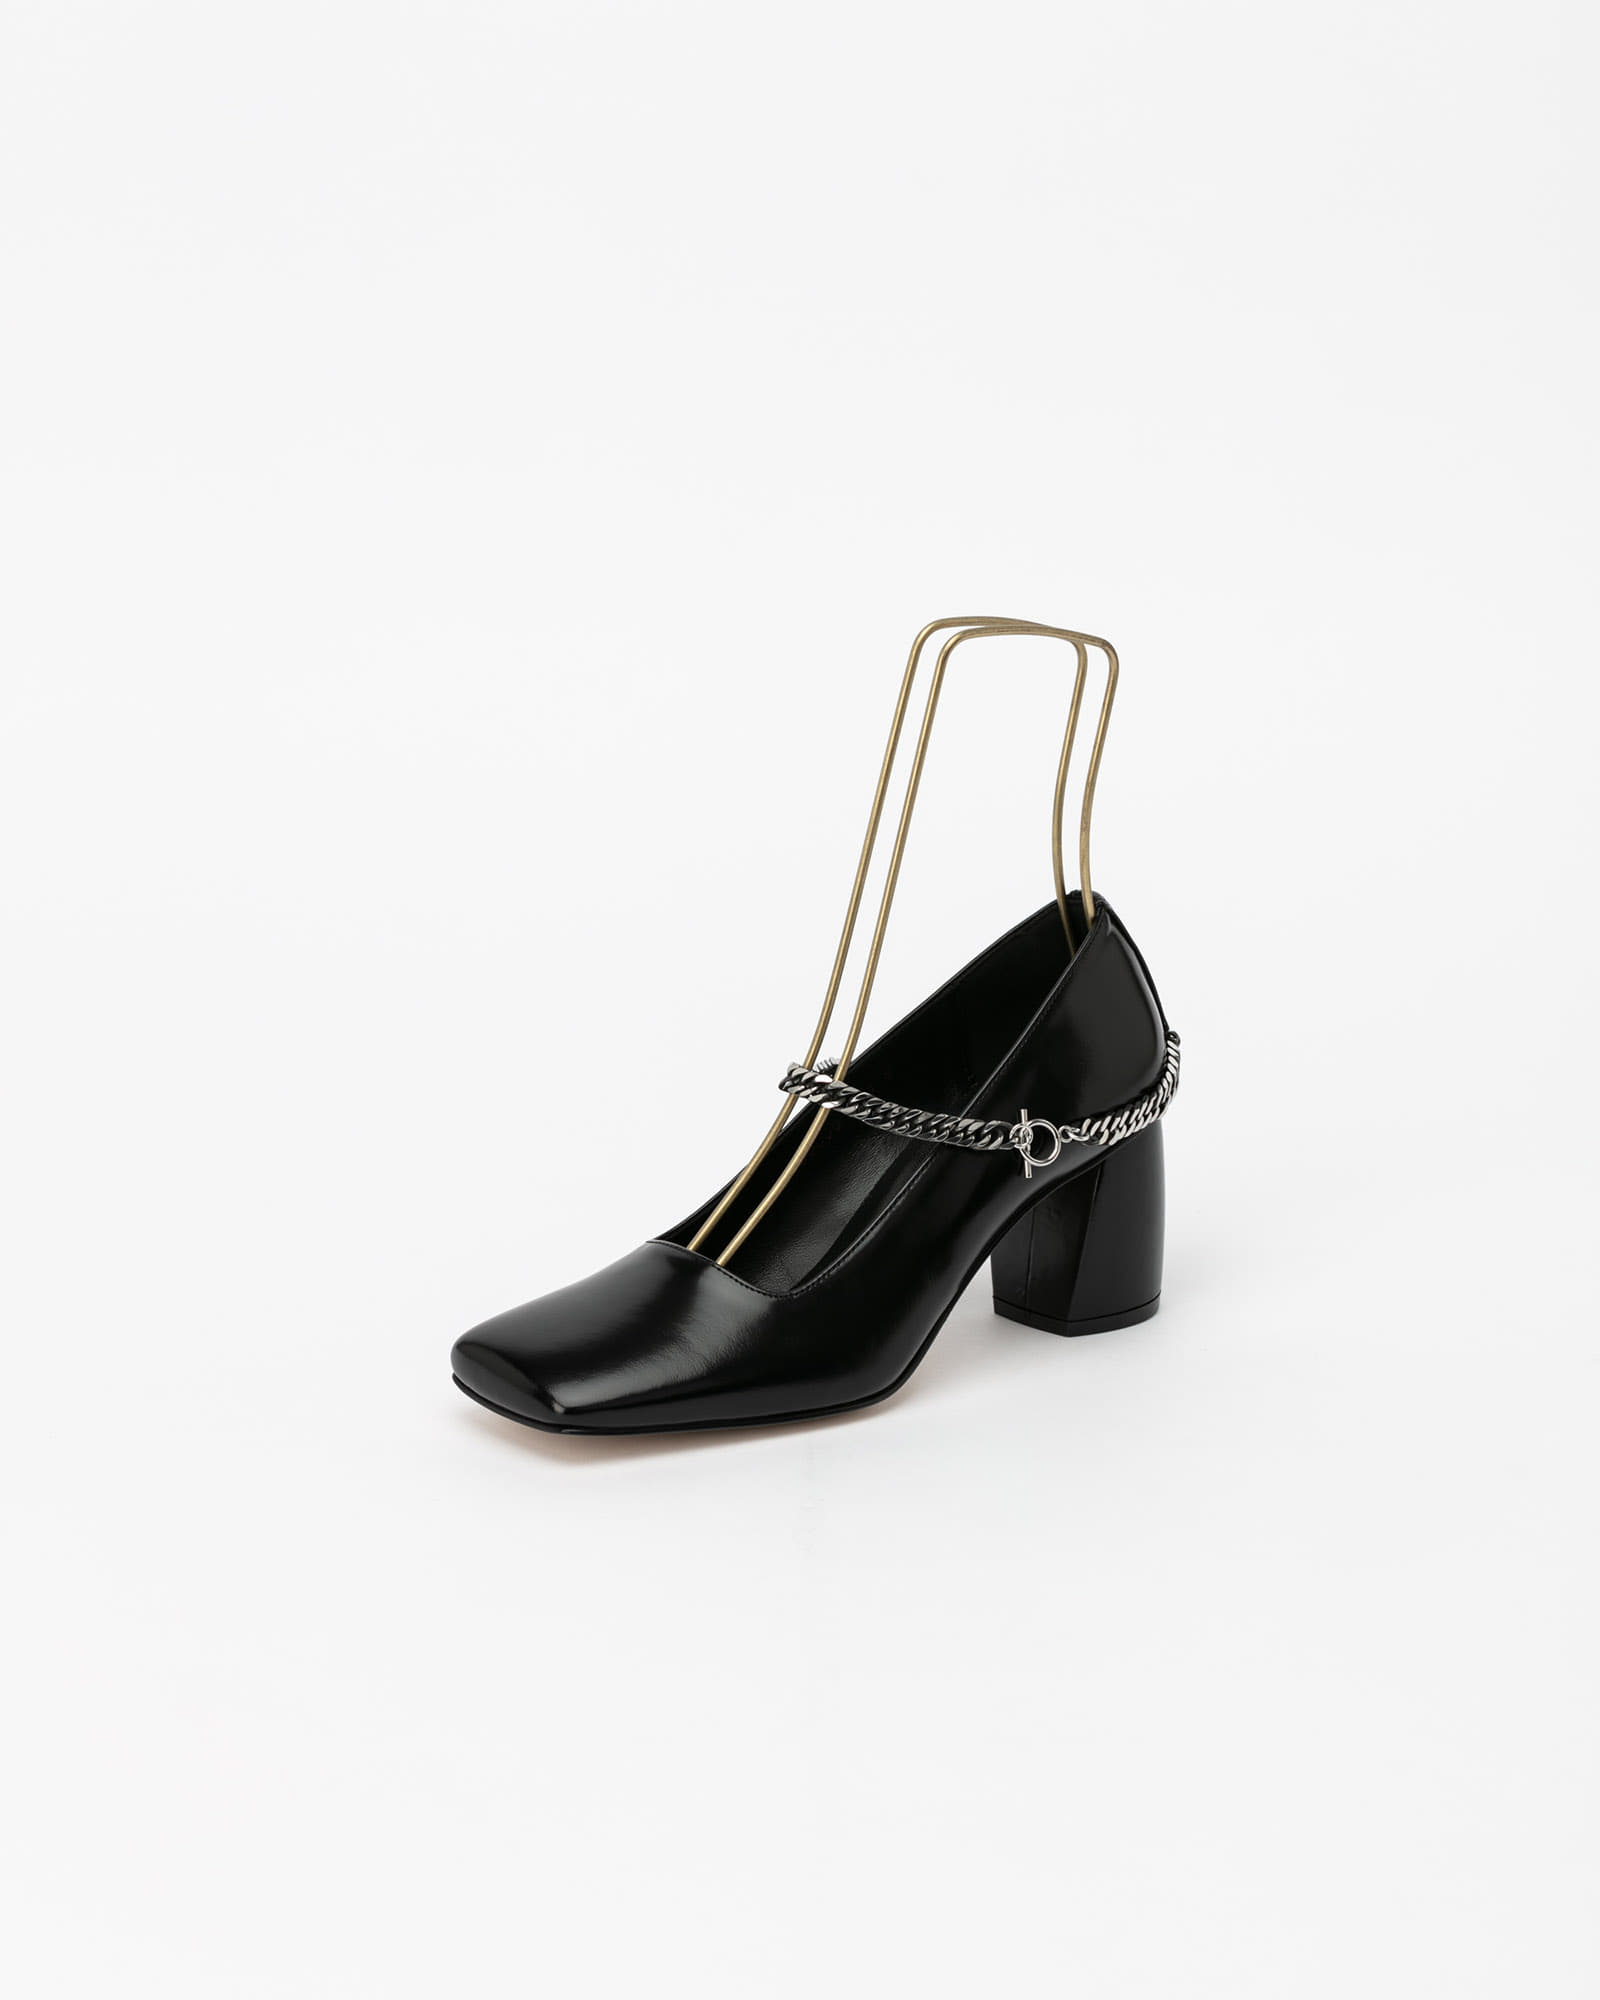 Sachsen Chained Pumps in Black